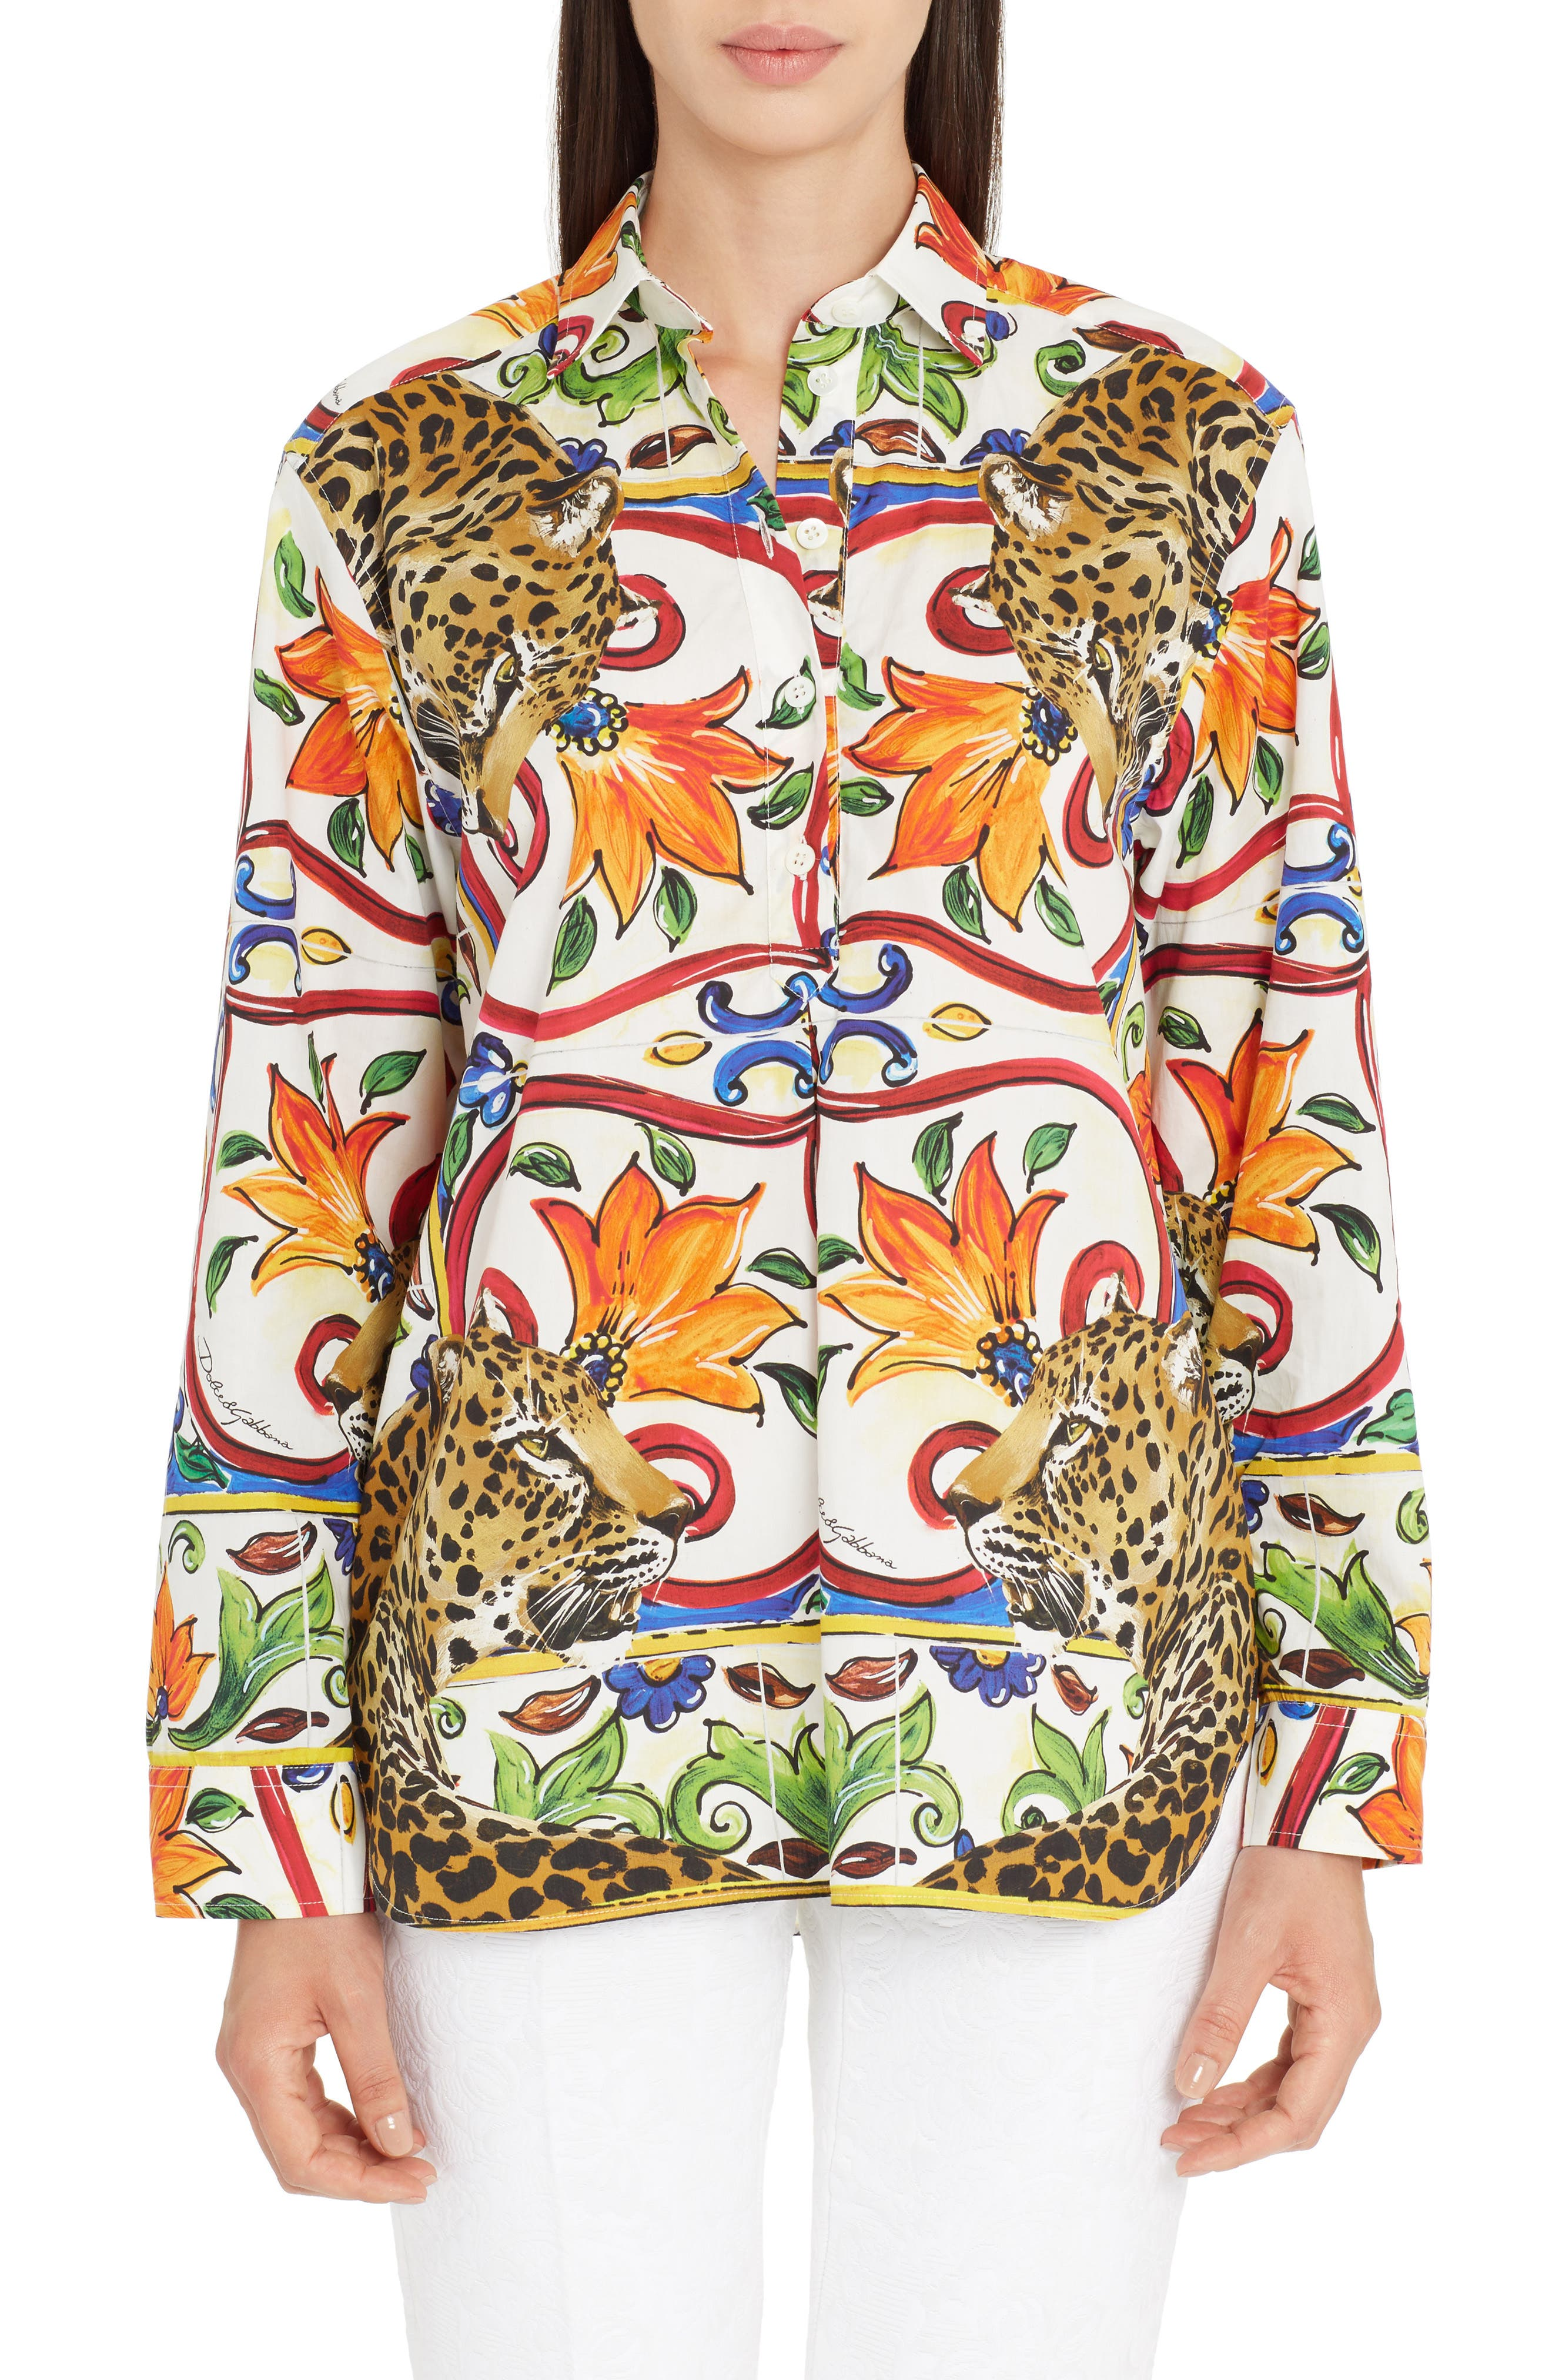 Dolce&Gabbana Maiolica Print Cotton Top